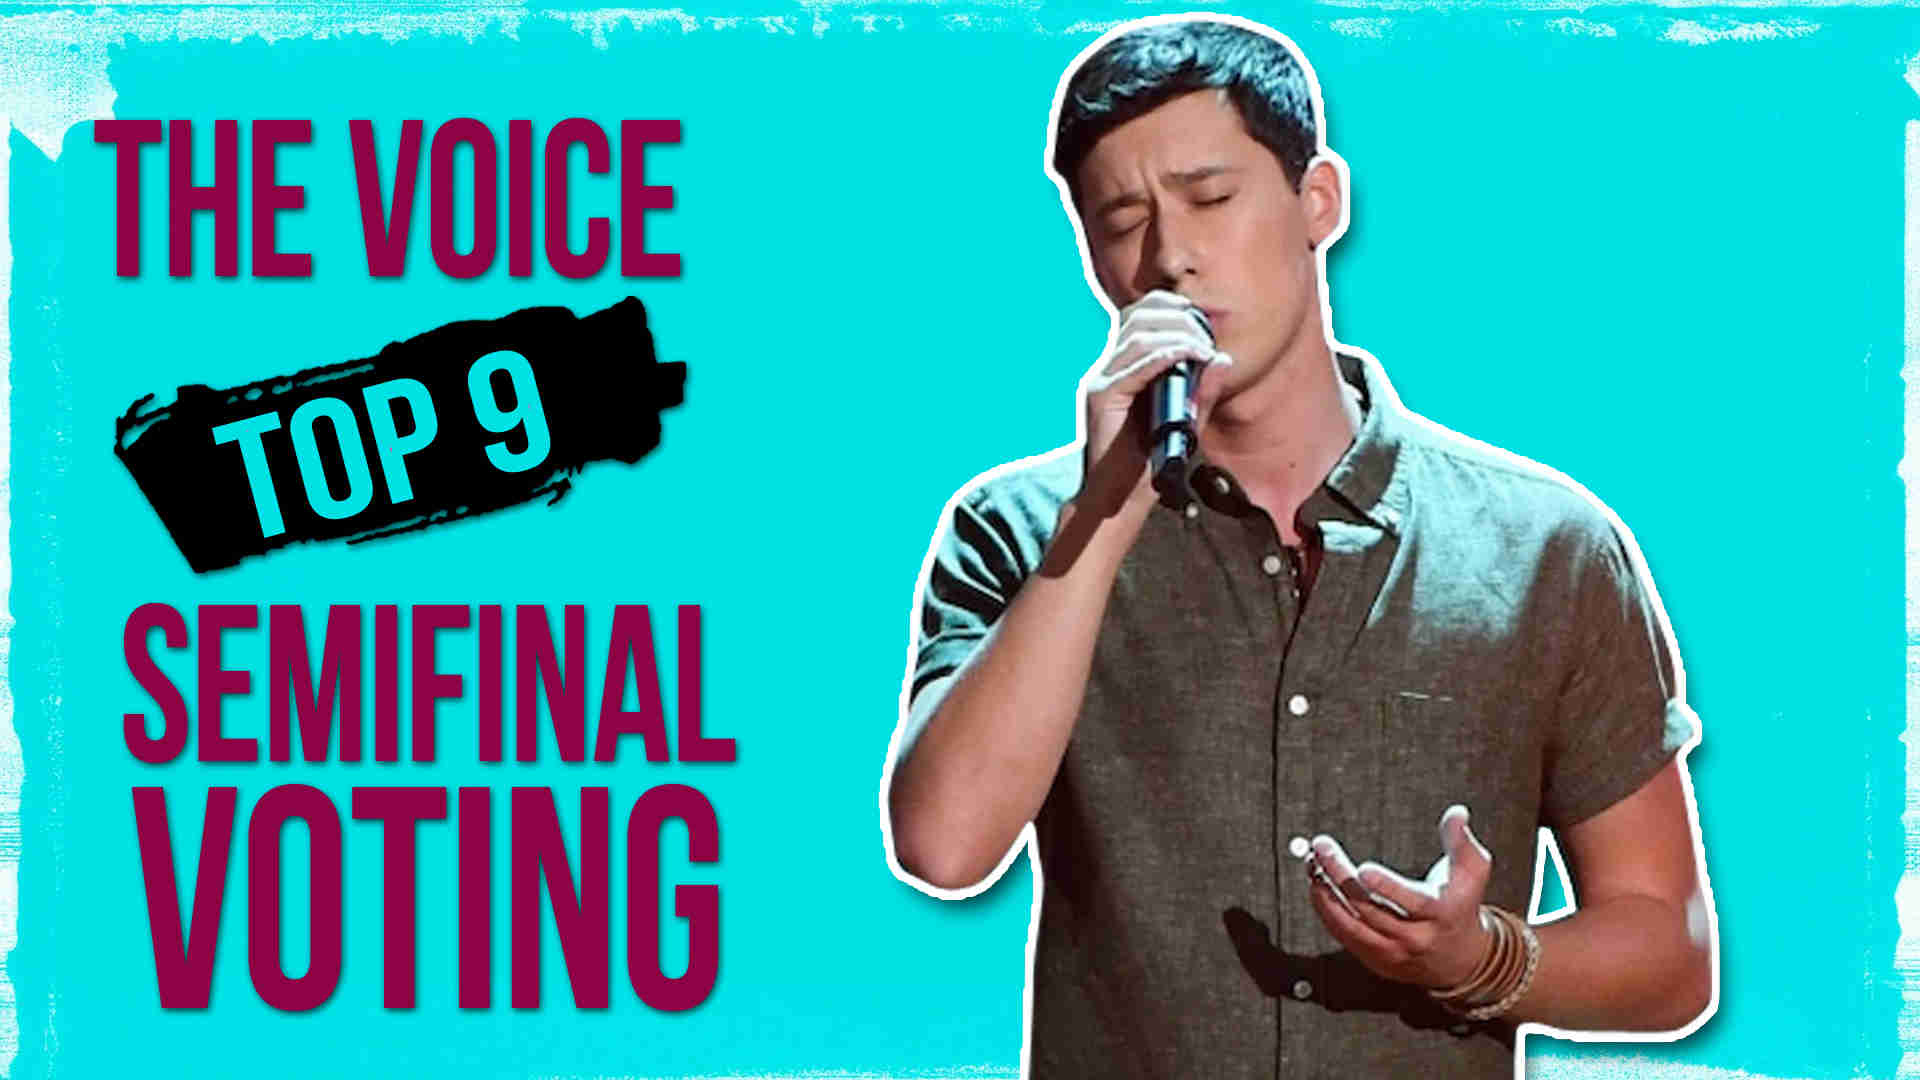 Vote Micah Iverson The Voice 2020 Semifinals Voting Tonight on 11 May 2020